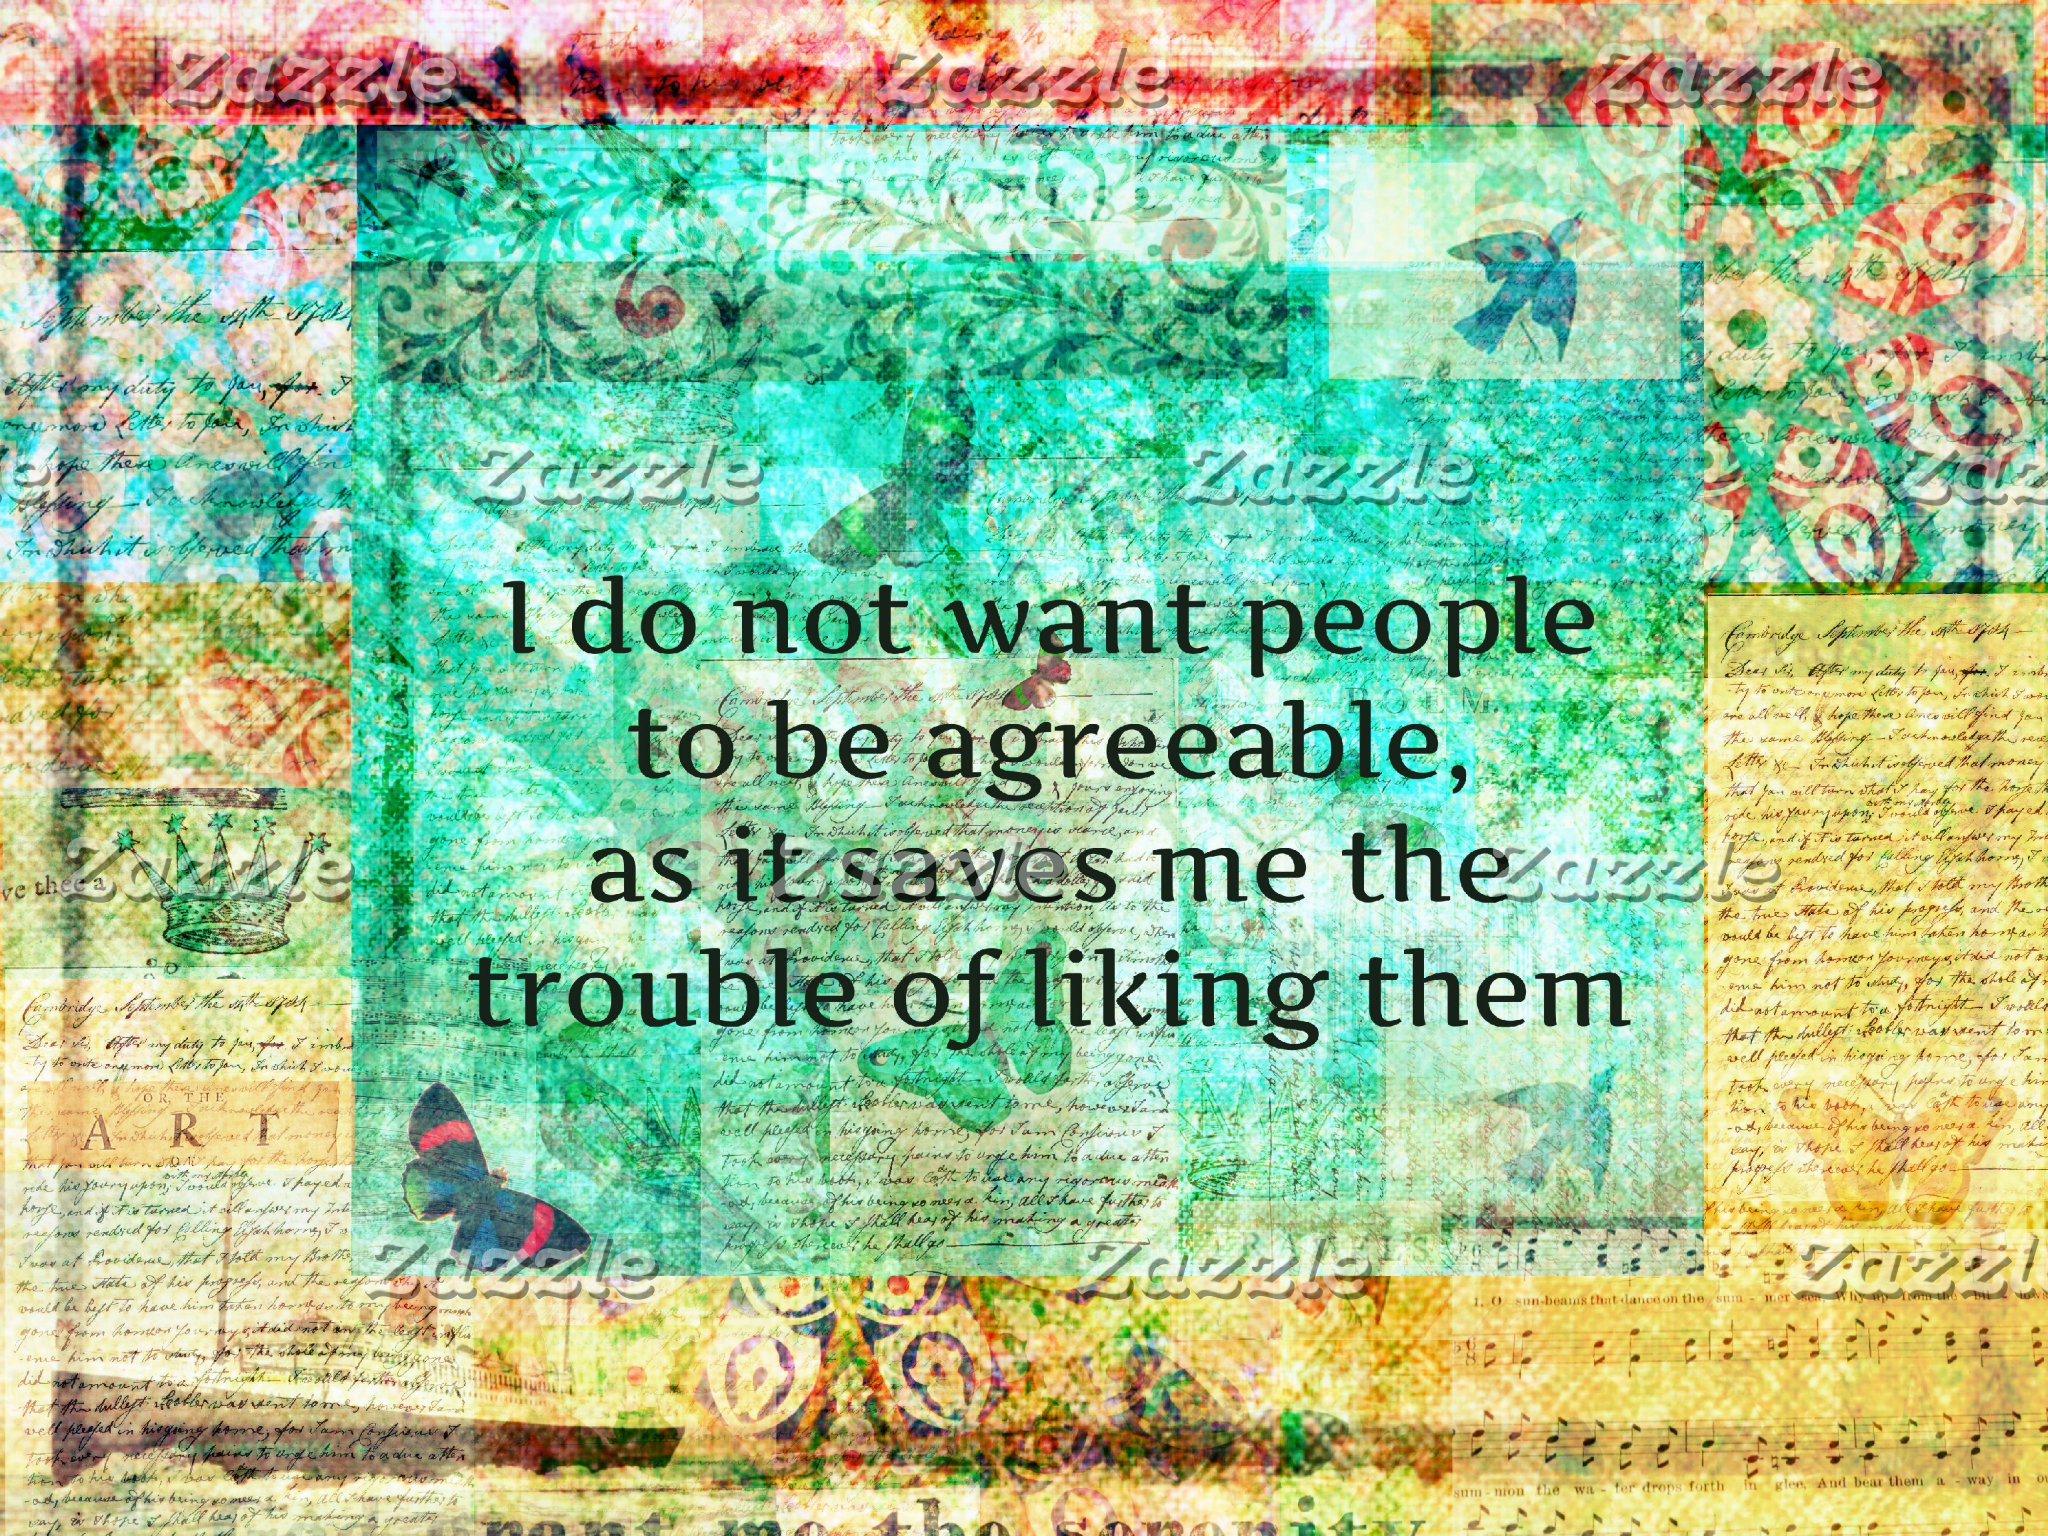 """I do not want people to be agreeable........."